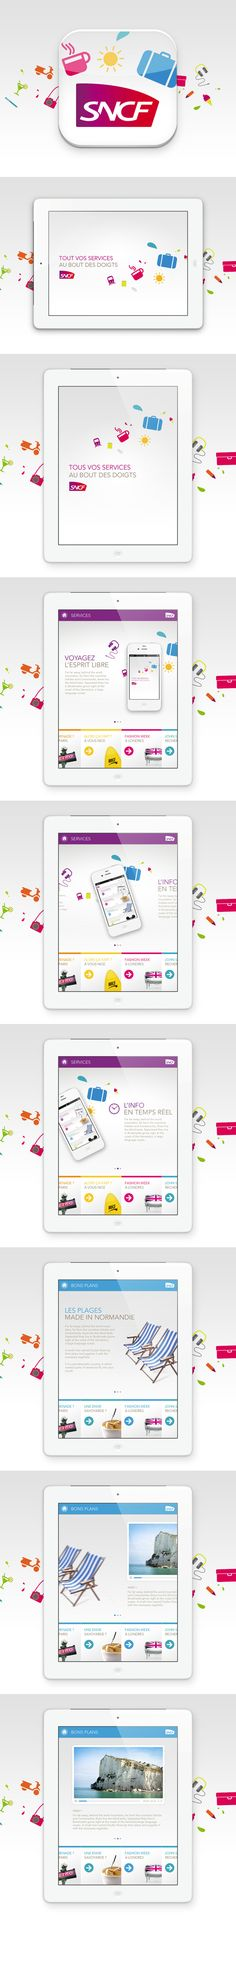 Simple, but effective | SNCF Ipad Application by yul , via Behance  http://www.techirsh.com